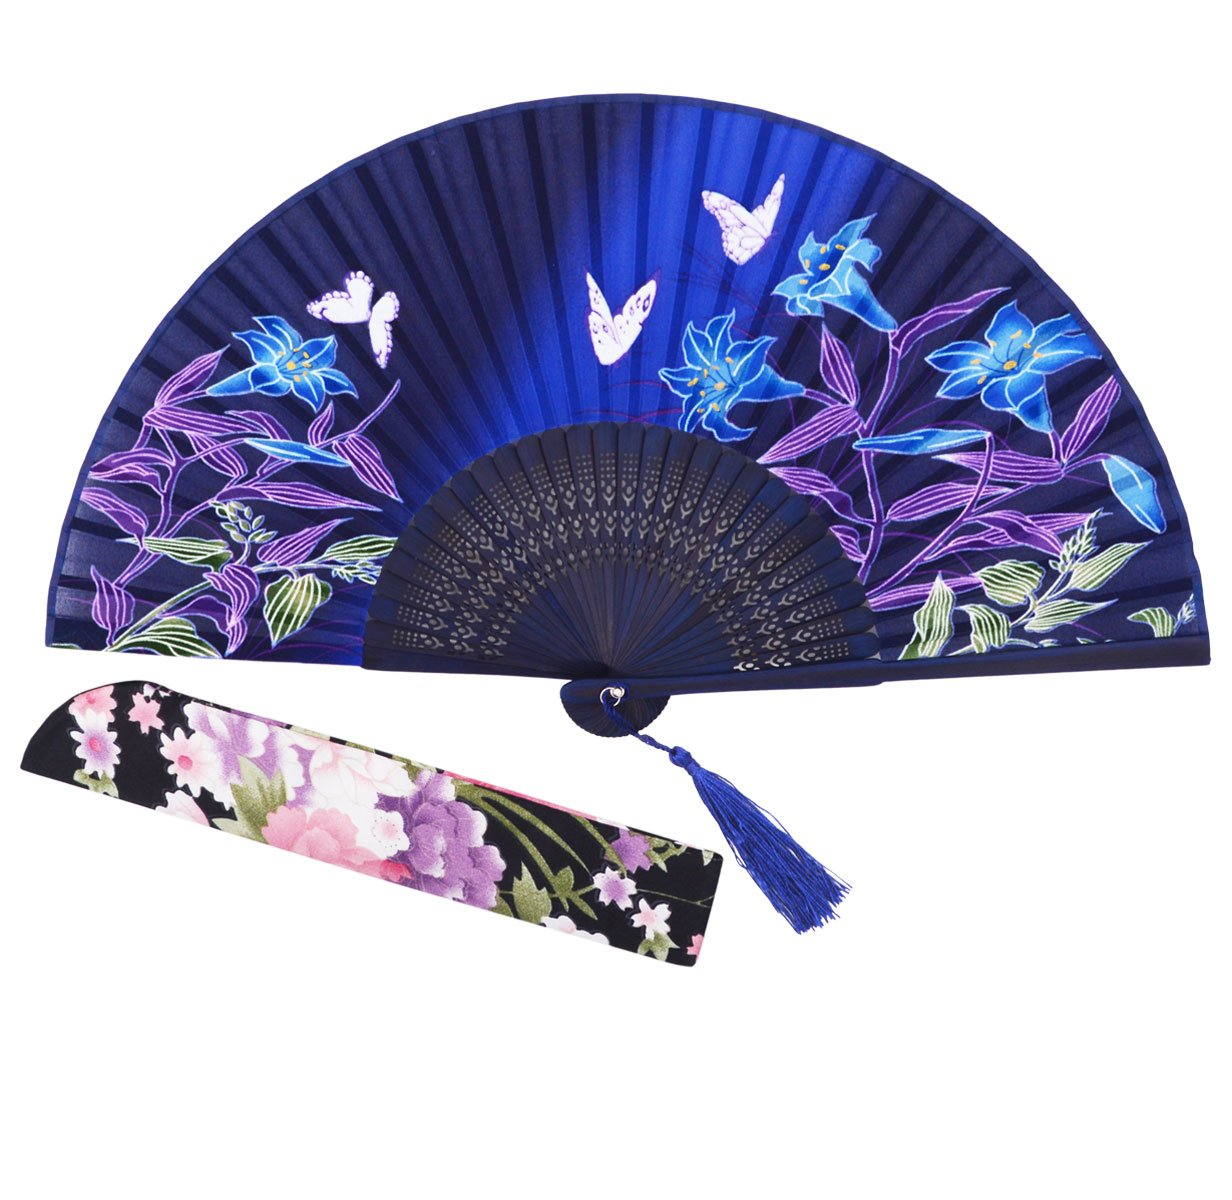 "STHUAHE 8.27""(21CM) Morning Glory and Butterfly Printing Pattern Woman Folding Fans"